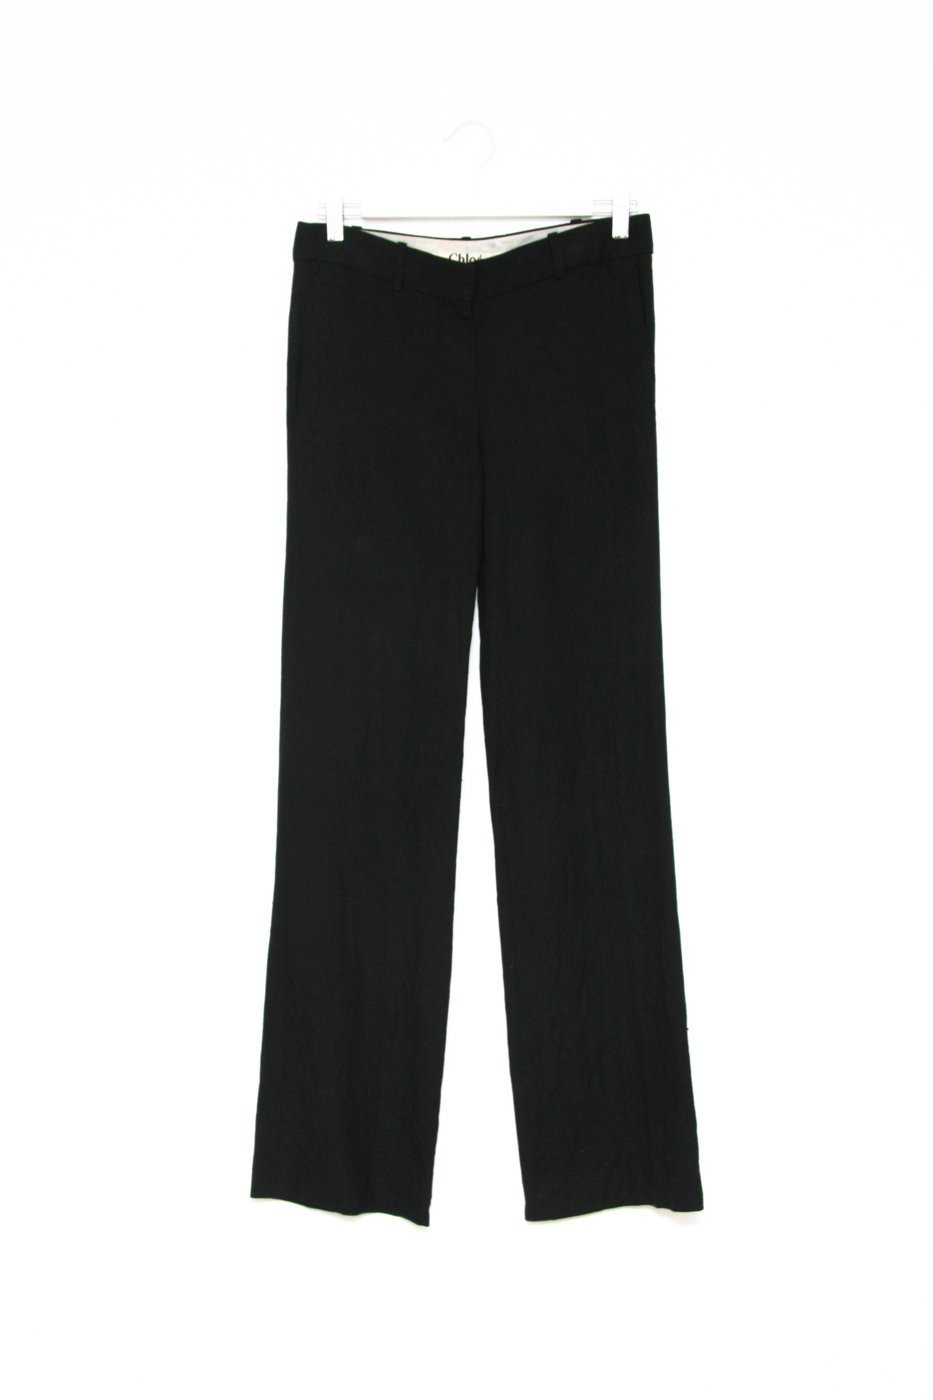 0471_CHLOÉ VISKOSE BLACK PANTS // 36